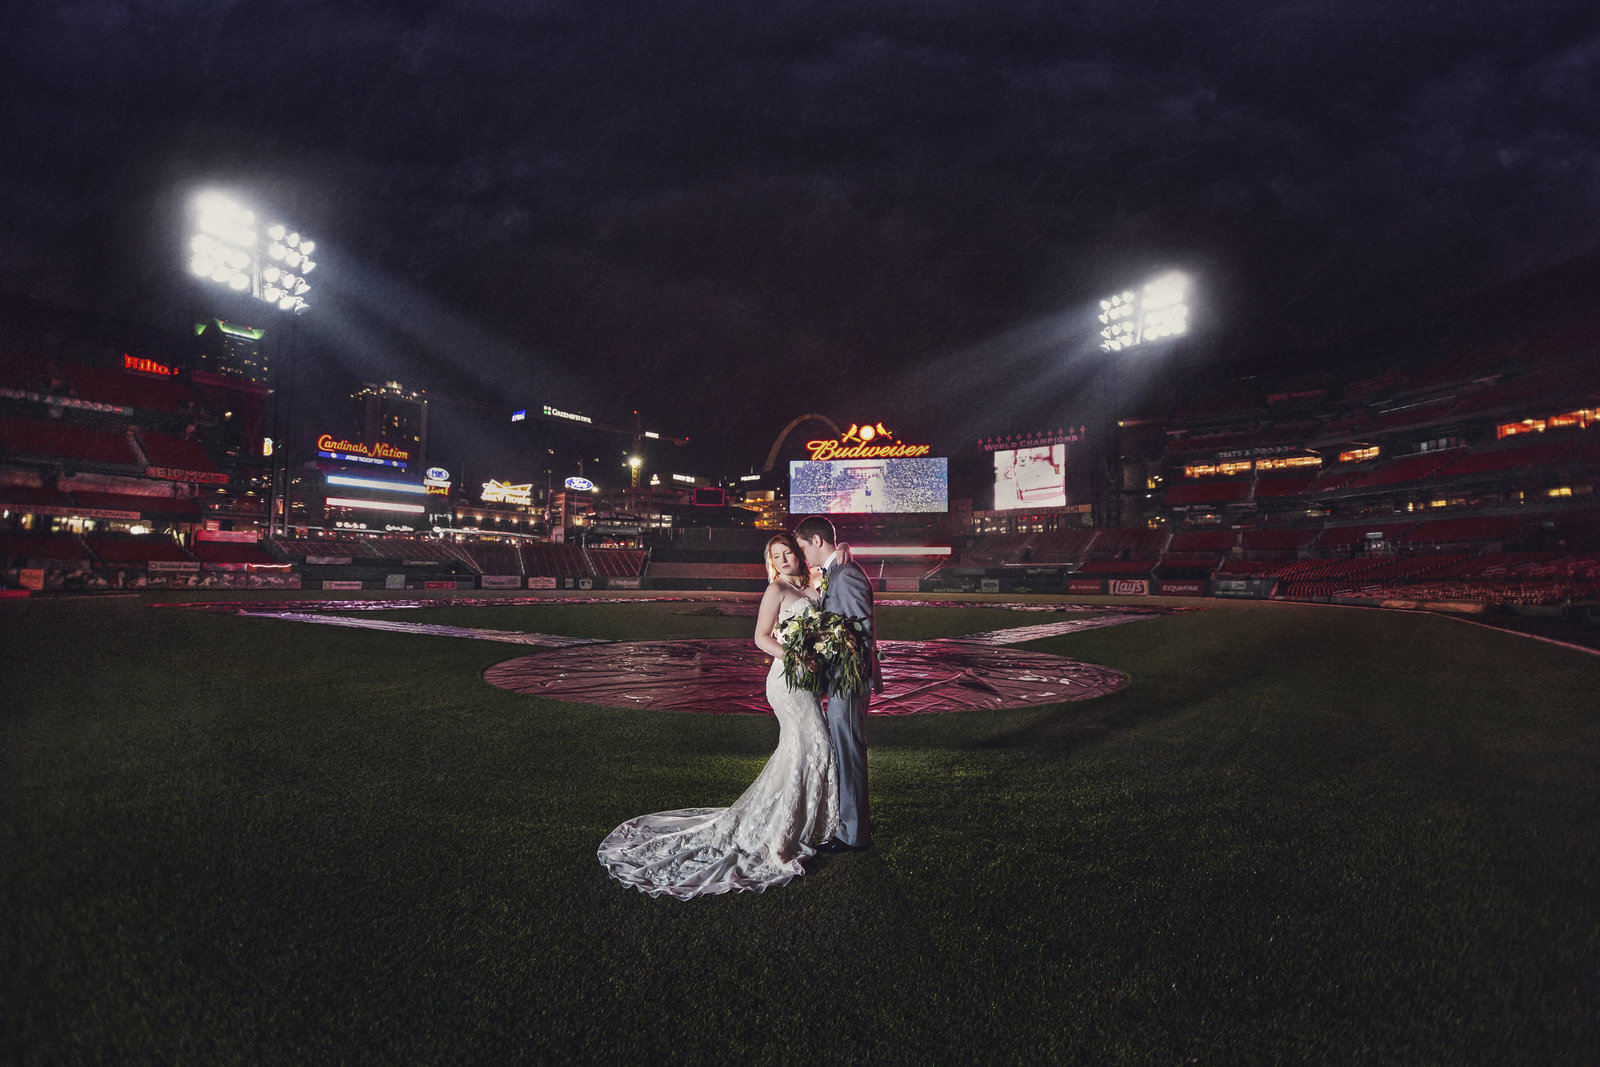 Bride and Groom, Kailyn and Adam, pose on the field of Busch Stadium as the field lights illuminate them by Jackelynn Noel Photography